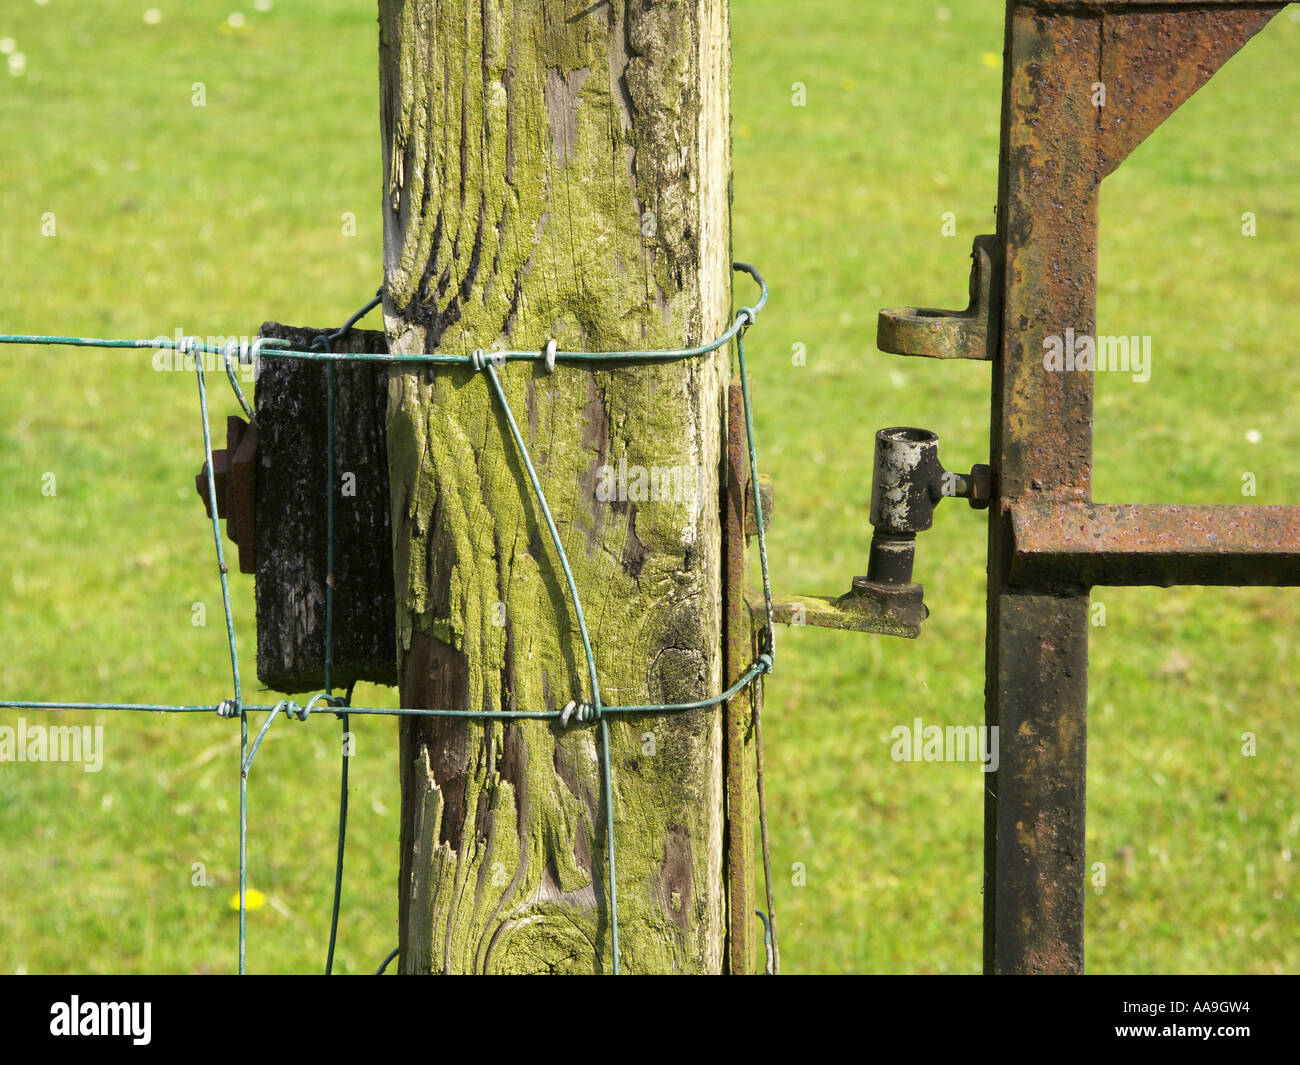 Rural gate gatepost with barbed wire - Stock Image